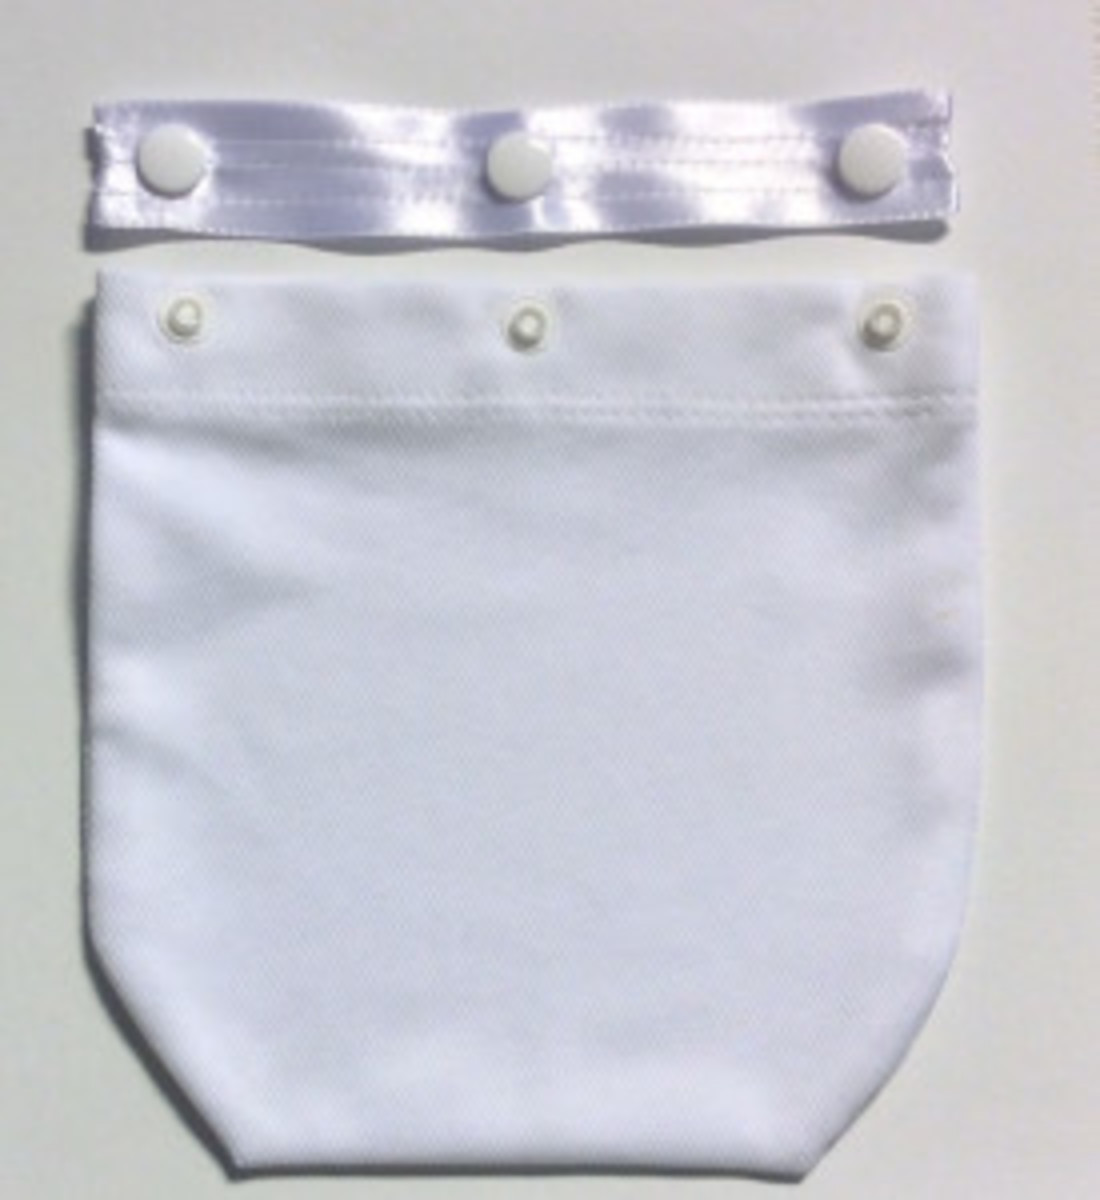 Use the snap strip to secure OstomyPockets to your undergarment. The ostomy pouch can then be inserted into the pocket.